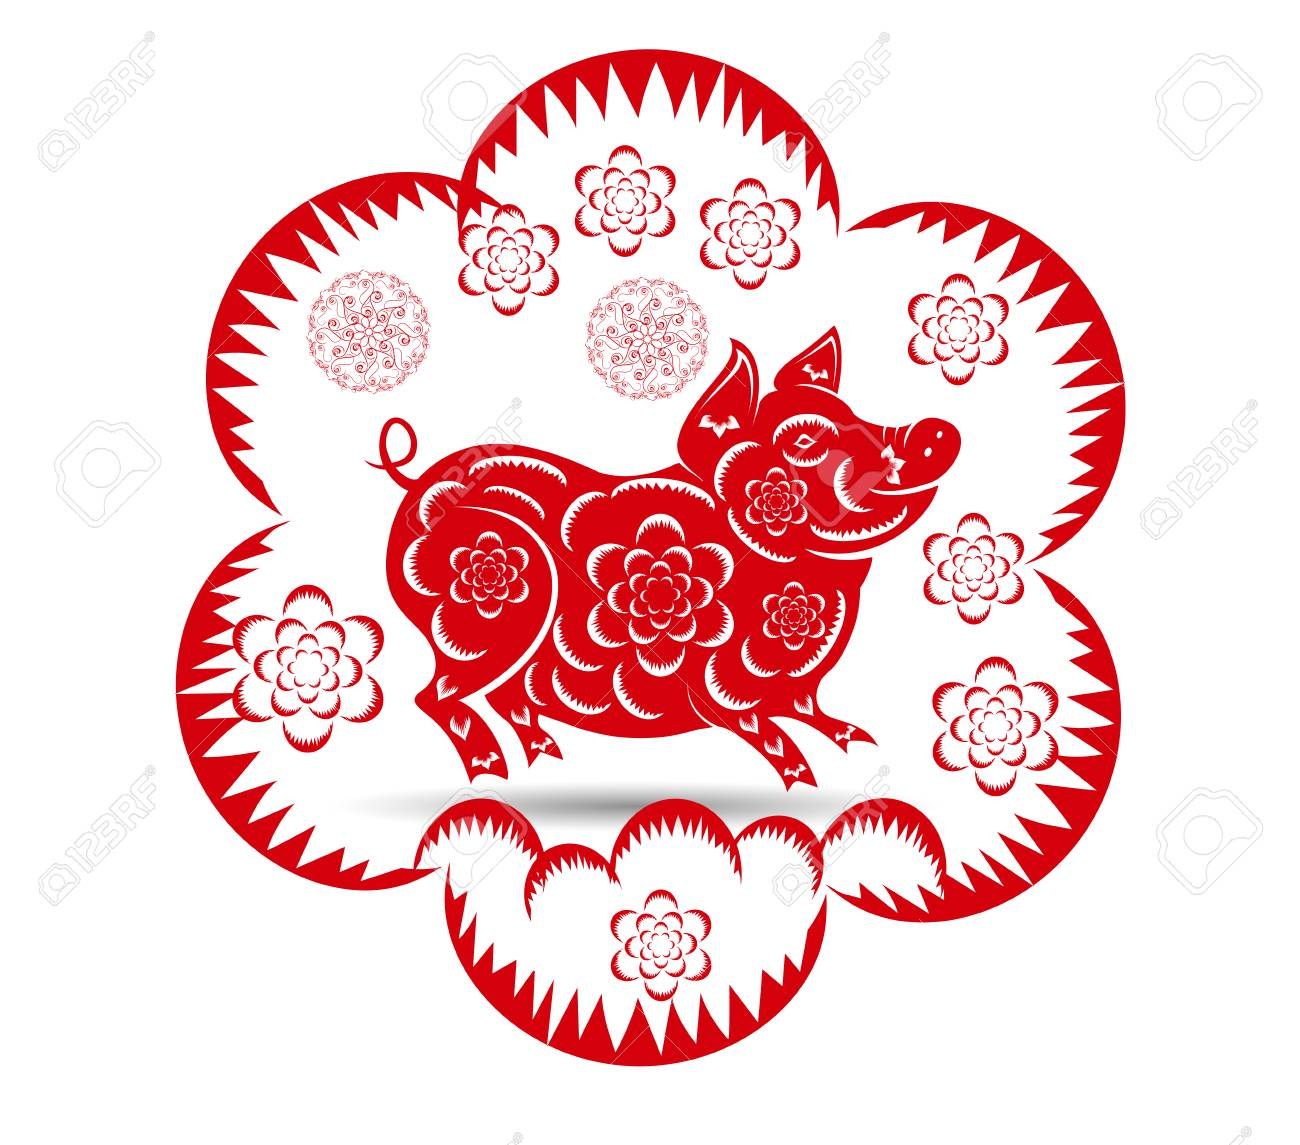 happy-chinese-new-year-2019-year-of-the-pig-lunar-new-year.jpg